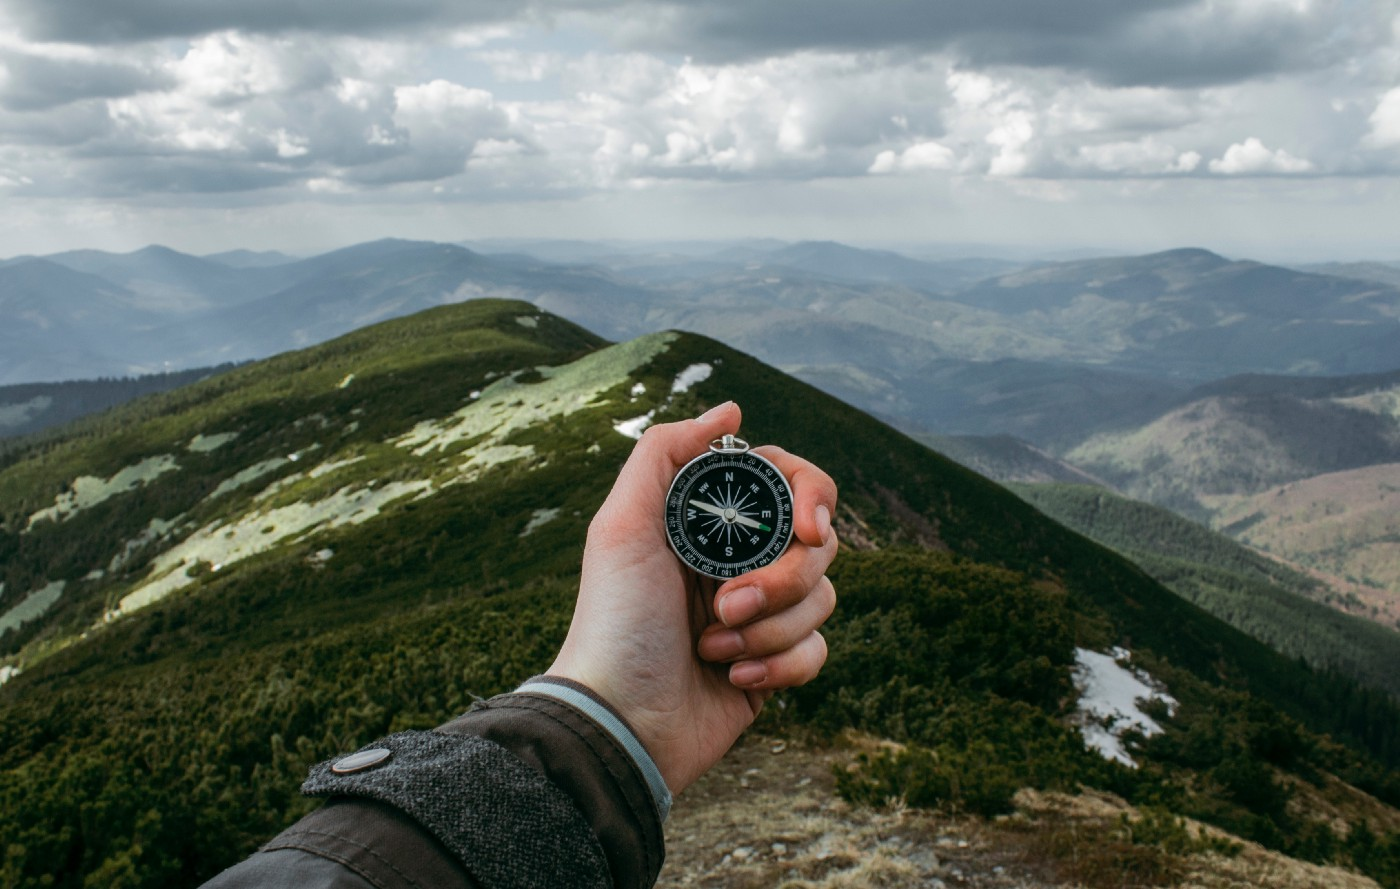 A hand holding a compass with a mountainscape backdrop